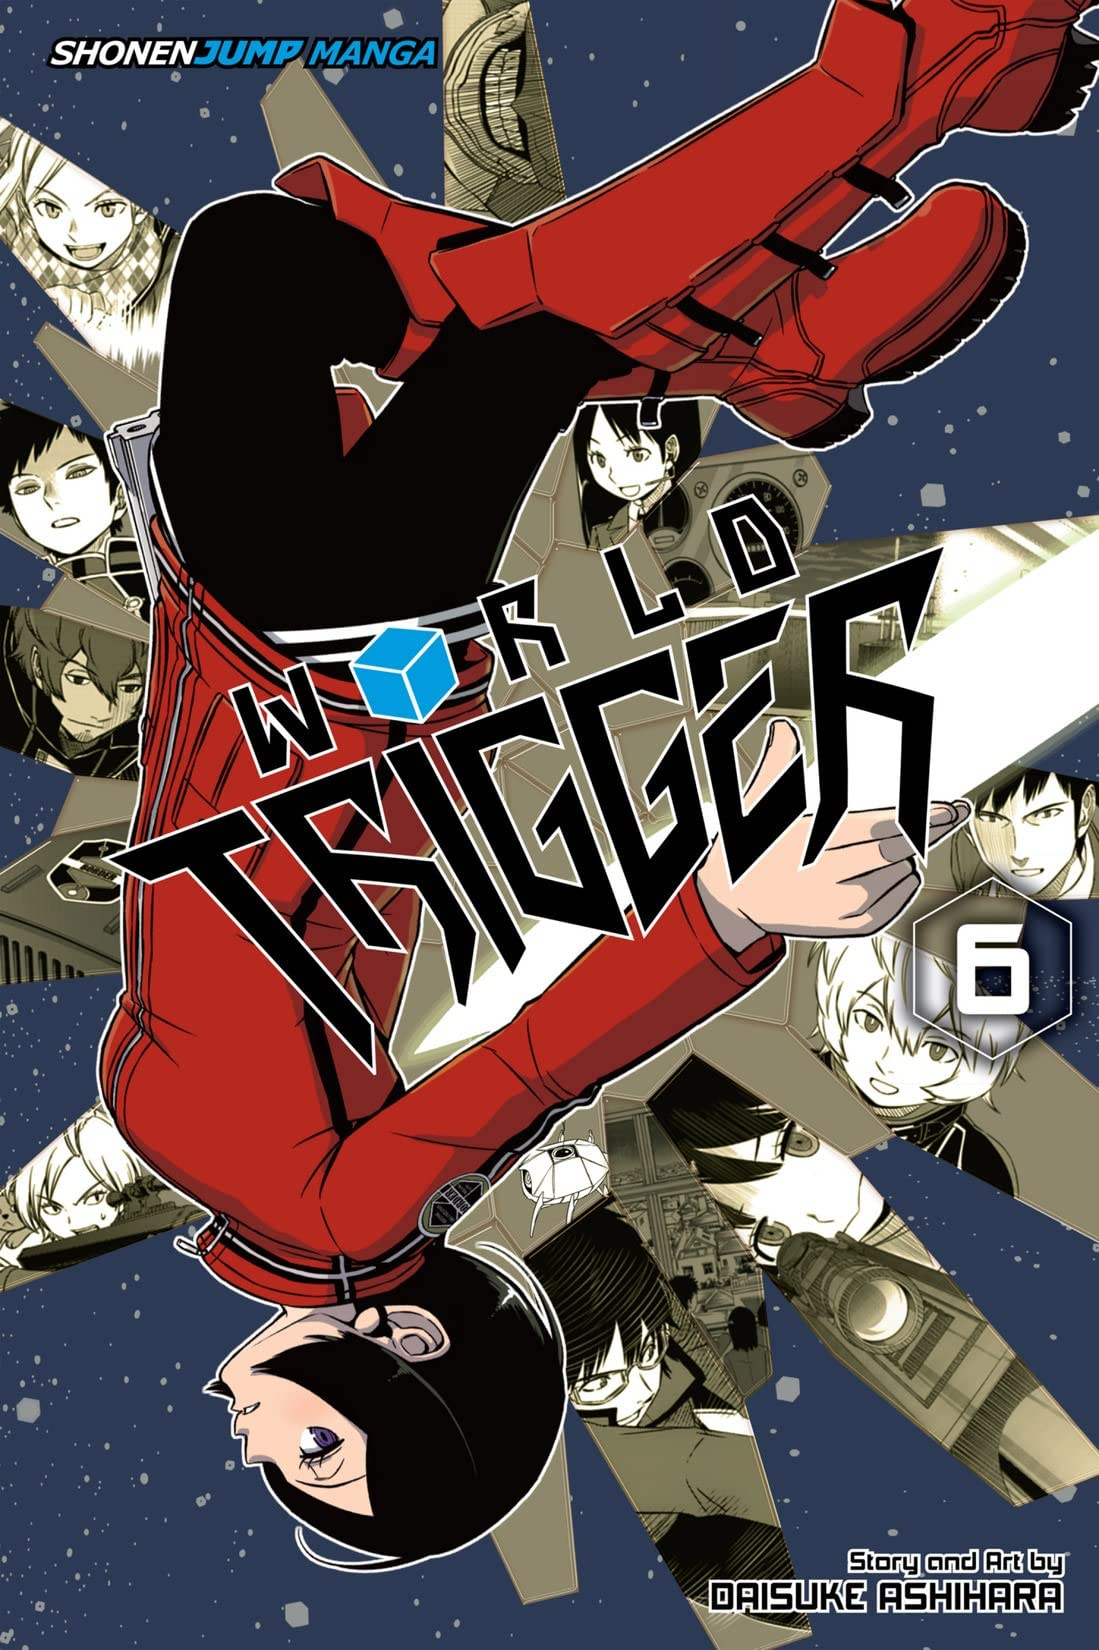 World Trigger Vol. 6